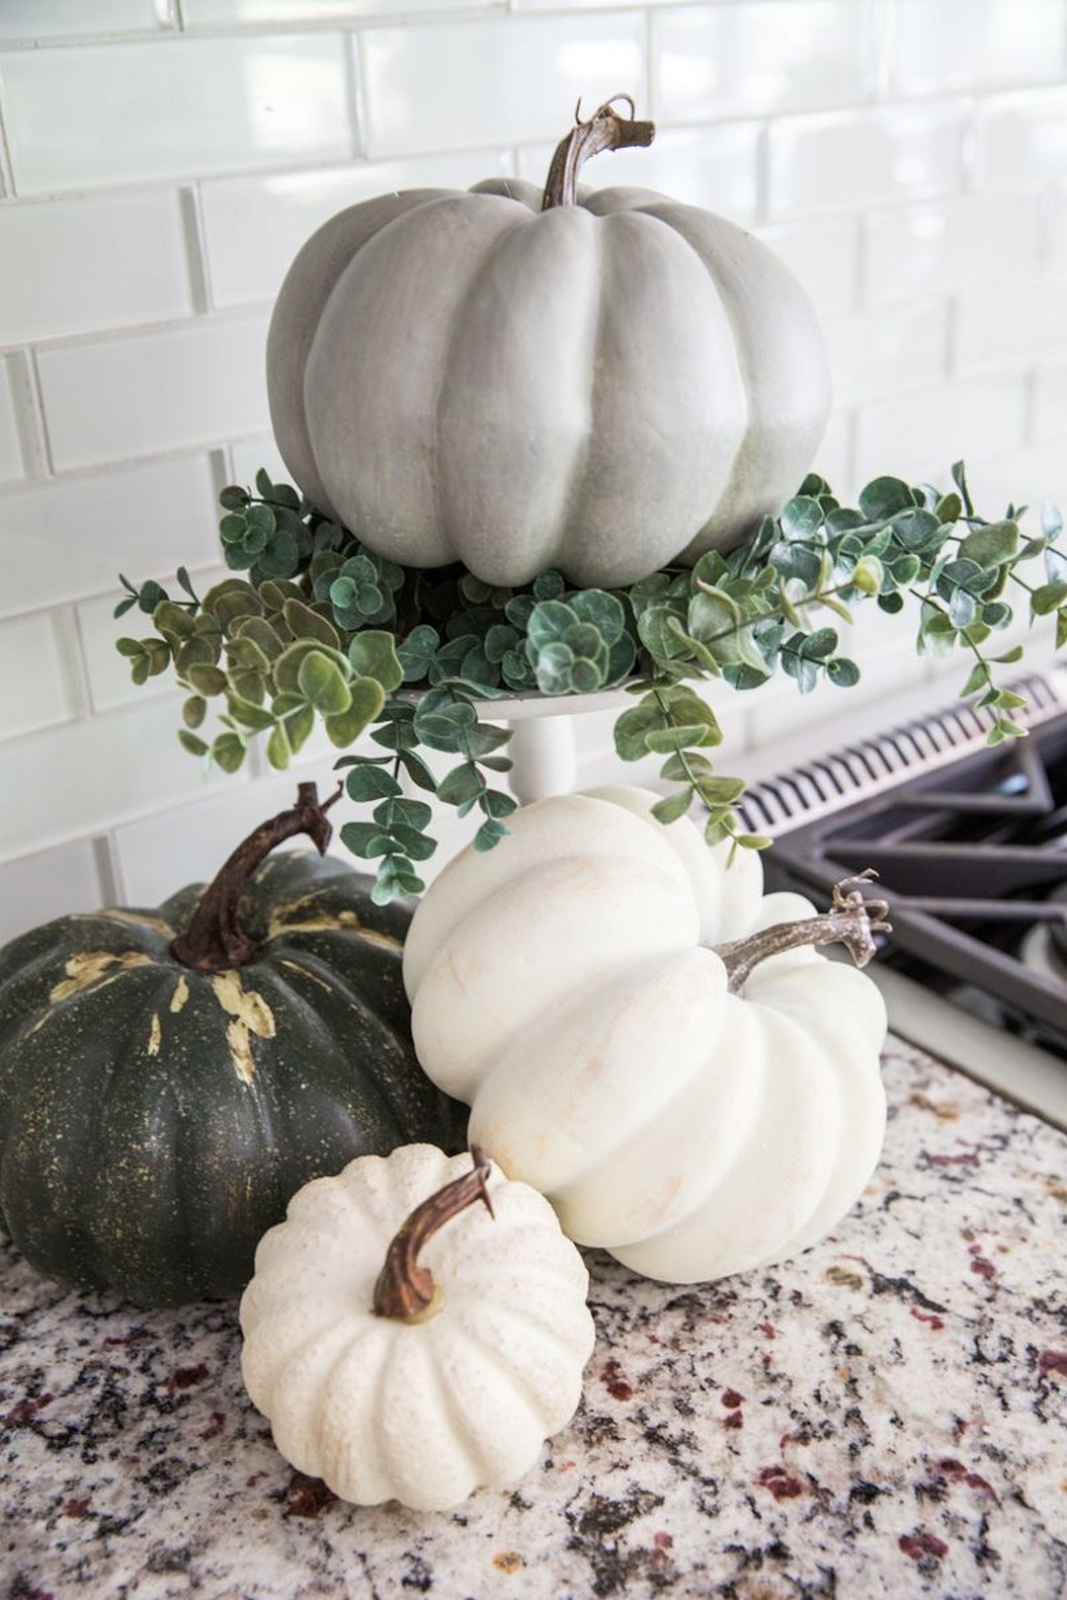 neutral pumpkins stacked on a kitchen countertop